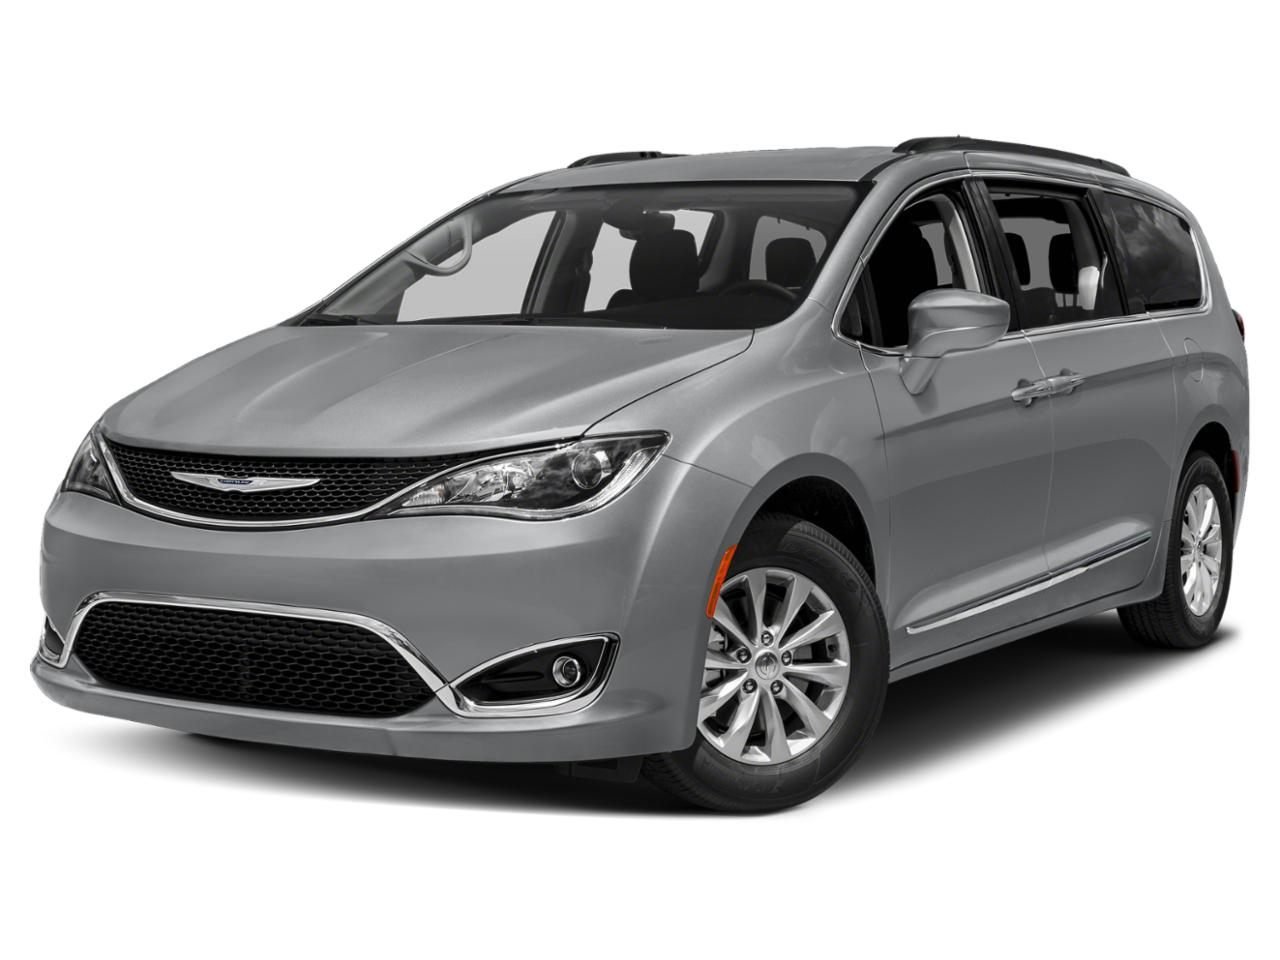 2018 Chrysler Pacifica Vehicle Photo in Spokane, WA 99207